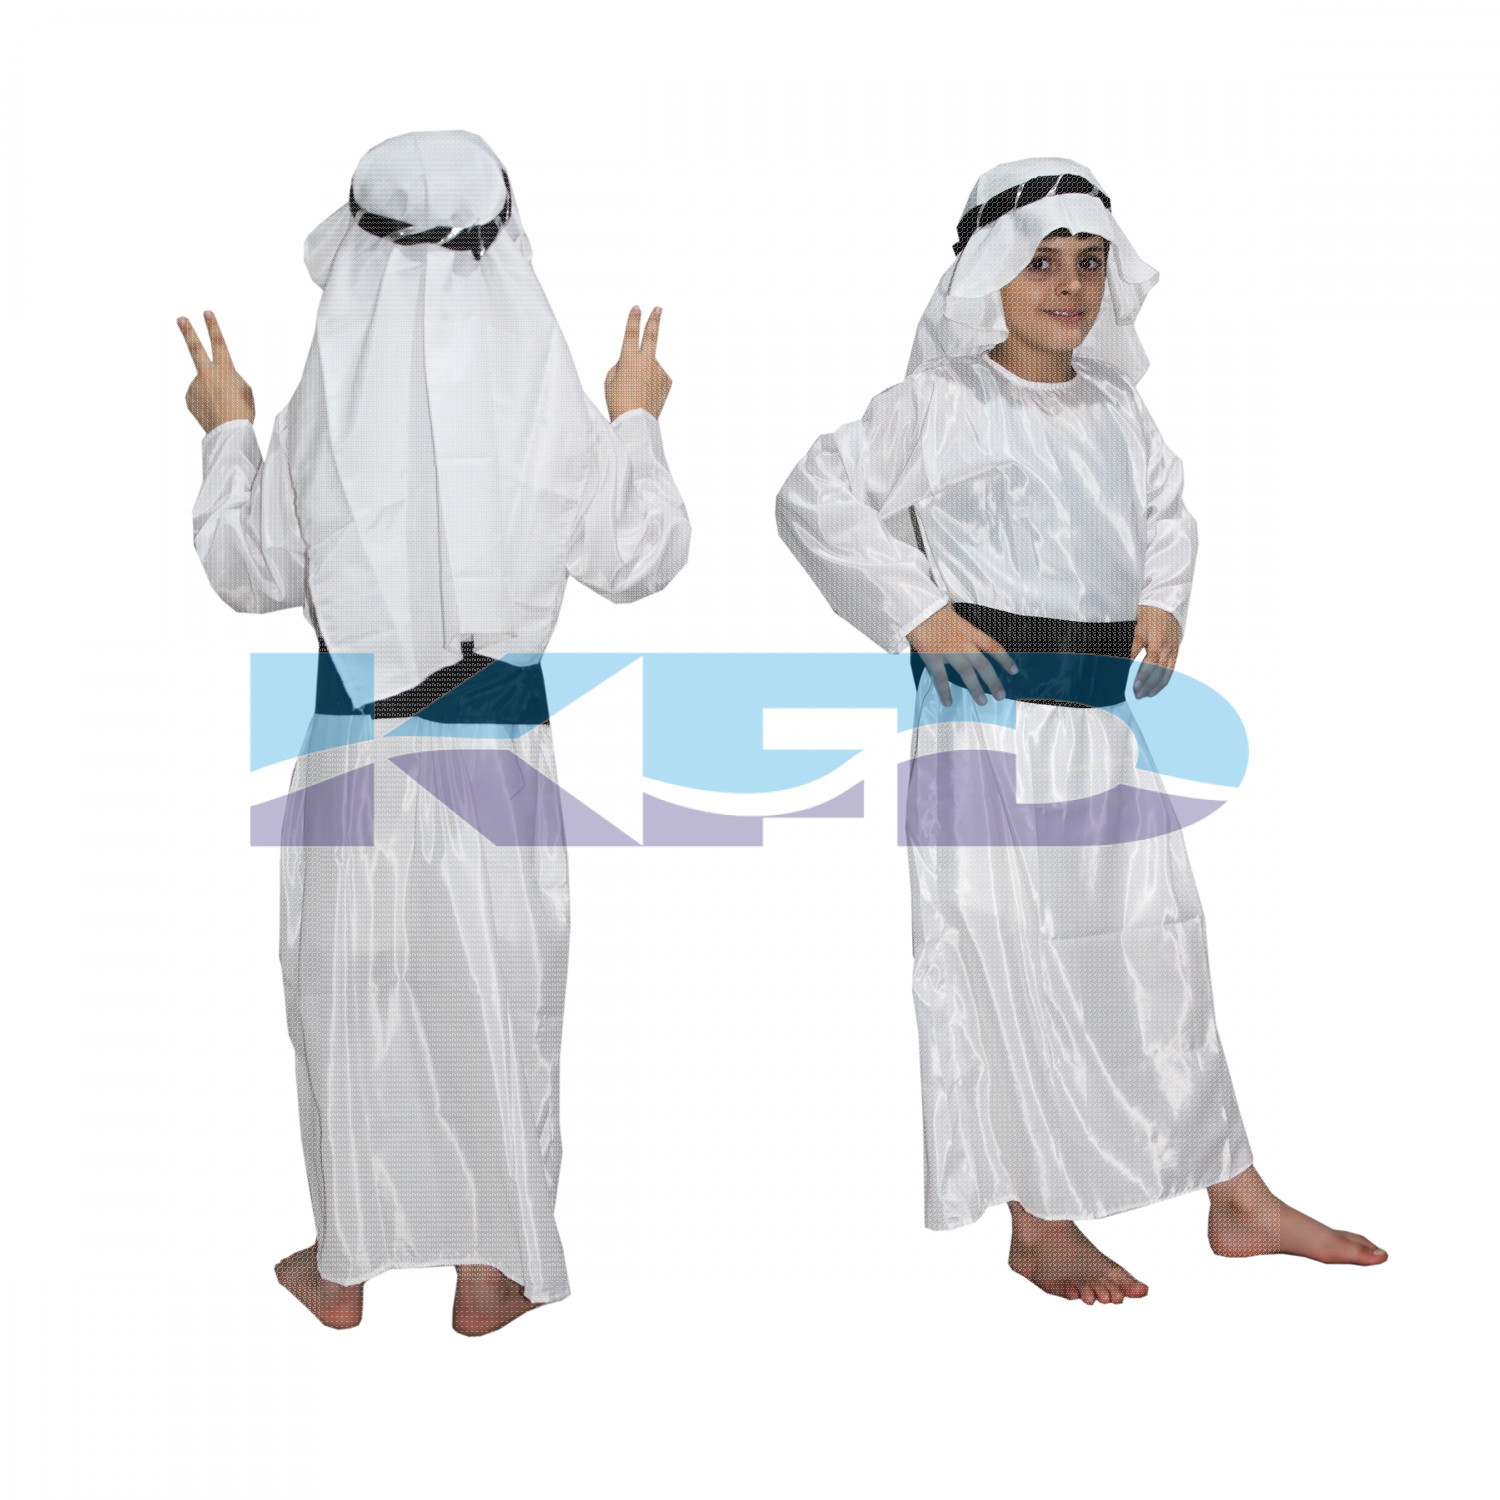 Shepherd/Arabian Shaikh Traditional Wear Global Costume For Kids School Annual function/Theme Party/Competition/Stage Shows Dress